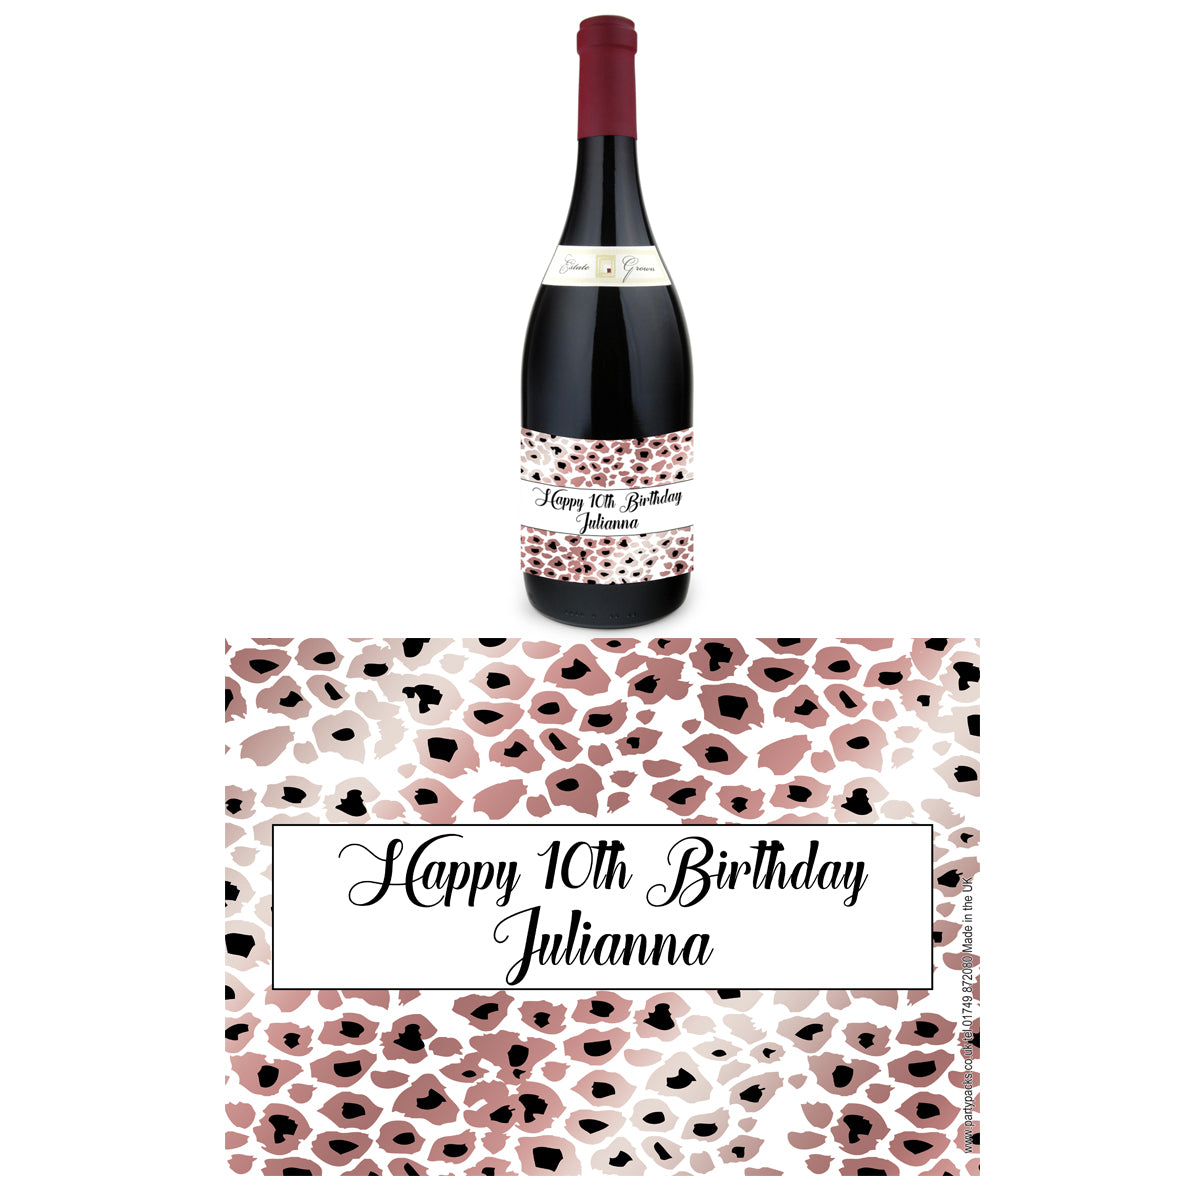 Personalised Wine Bottle Labels - Rose Gold Leopard Print - Pack of 4